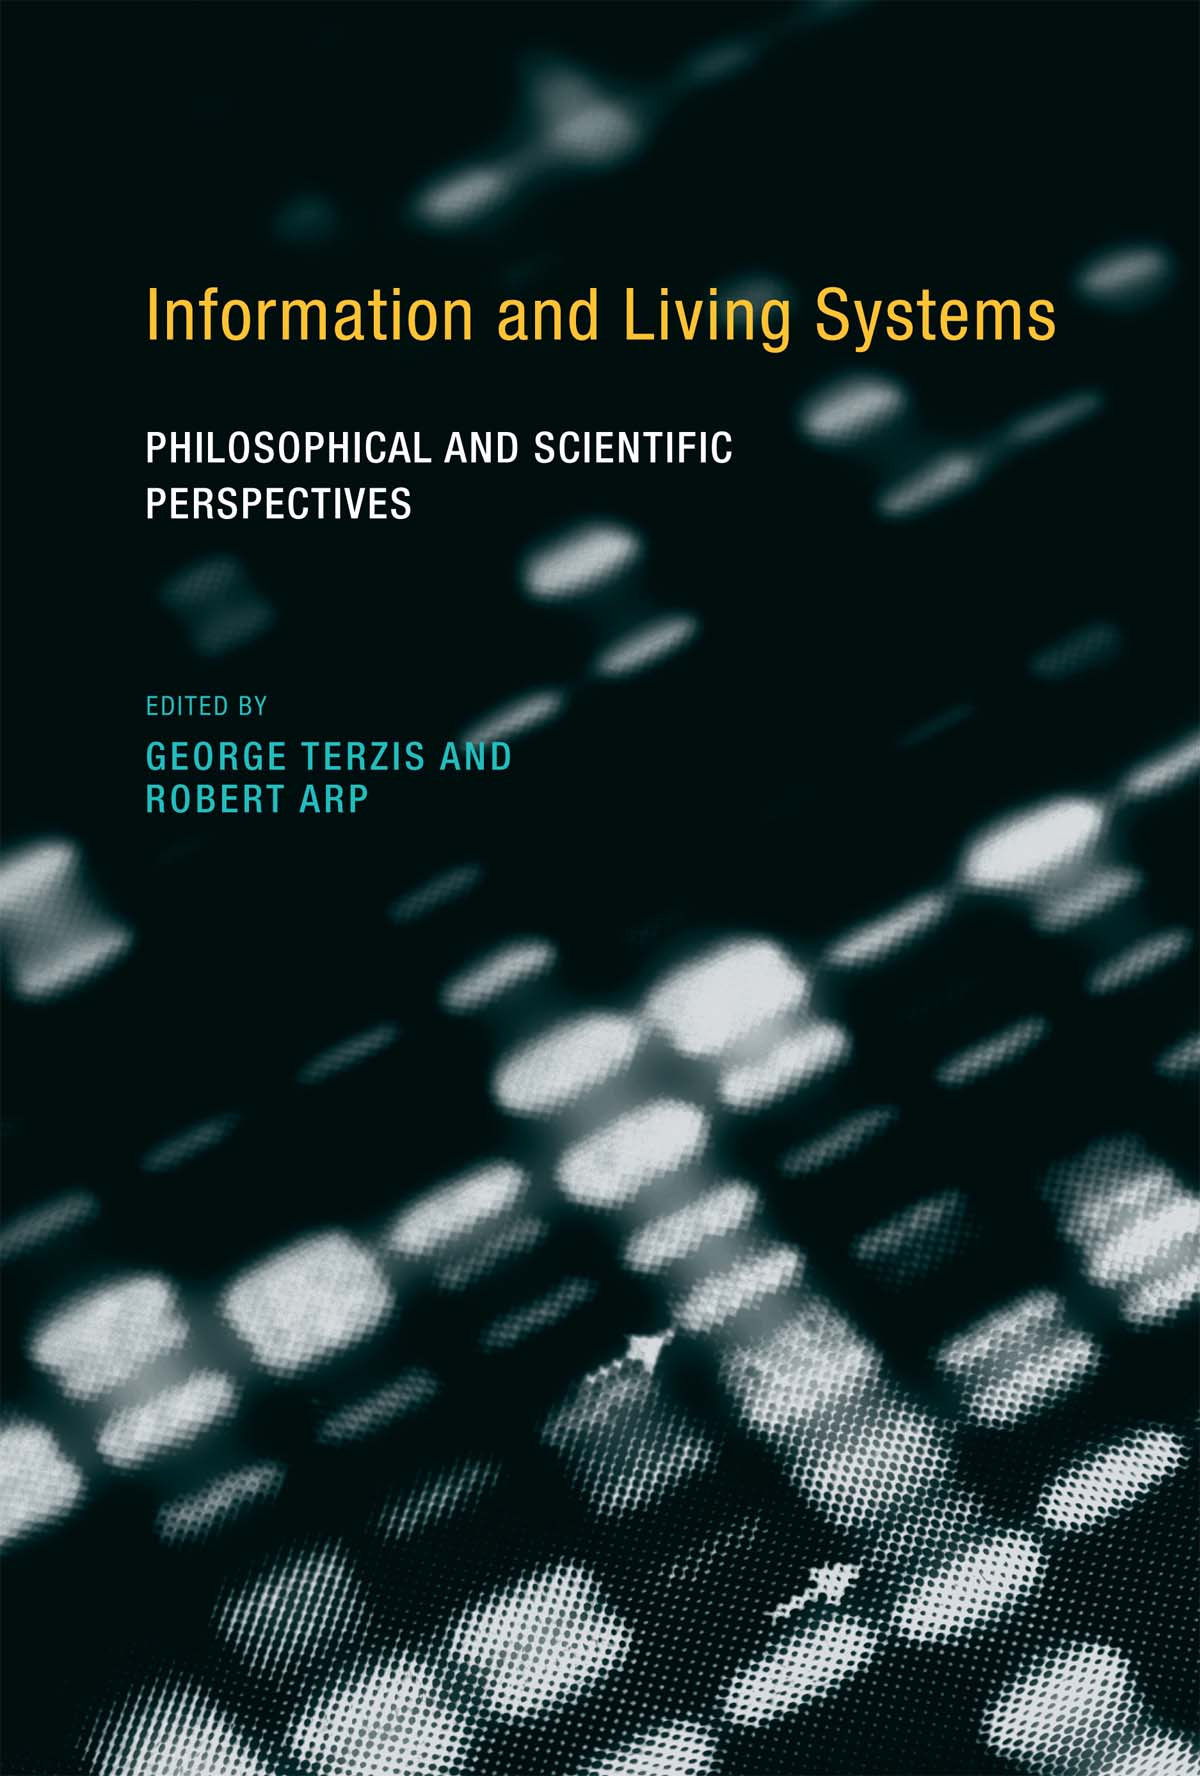 Information and Living Systems | The MIT Press